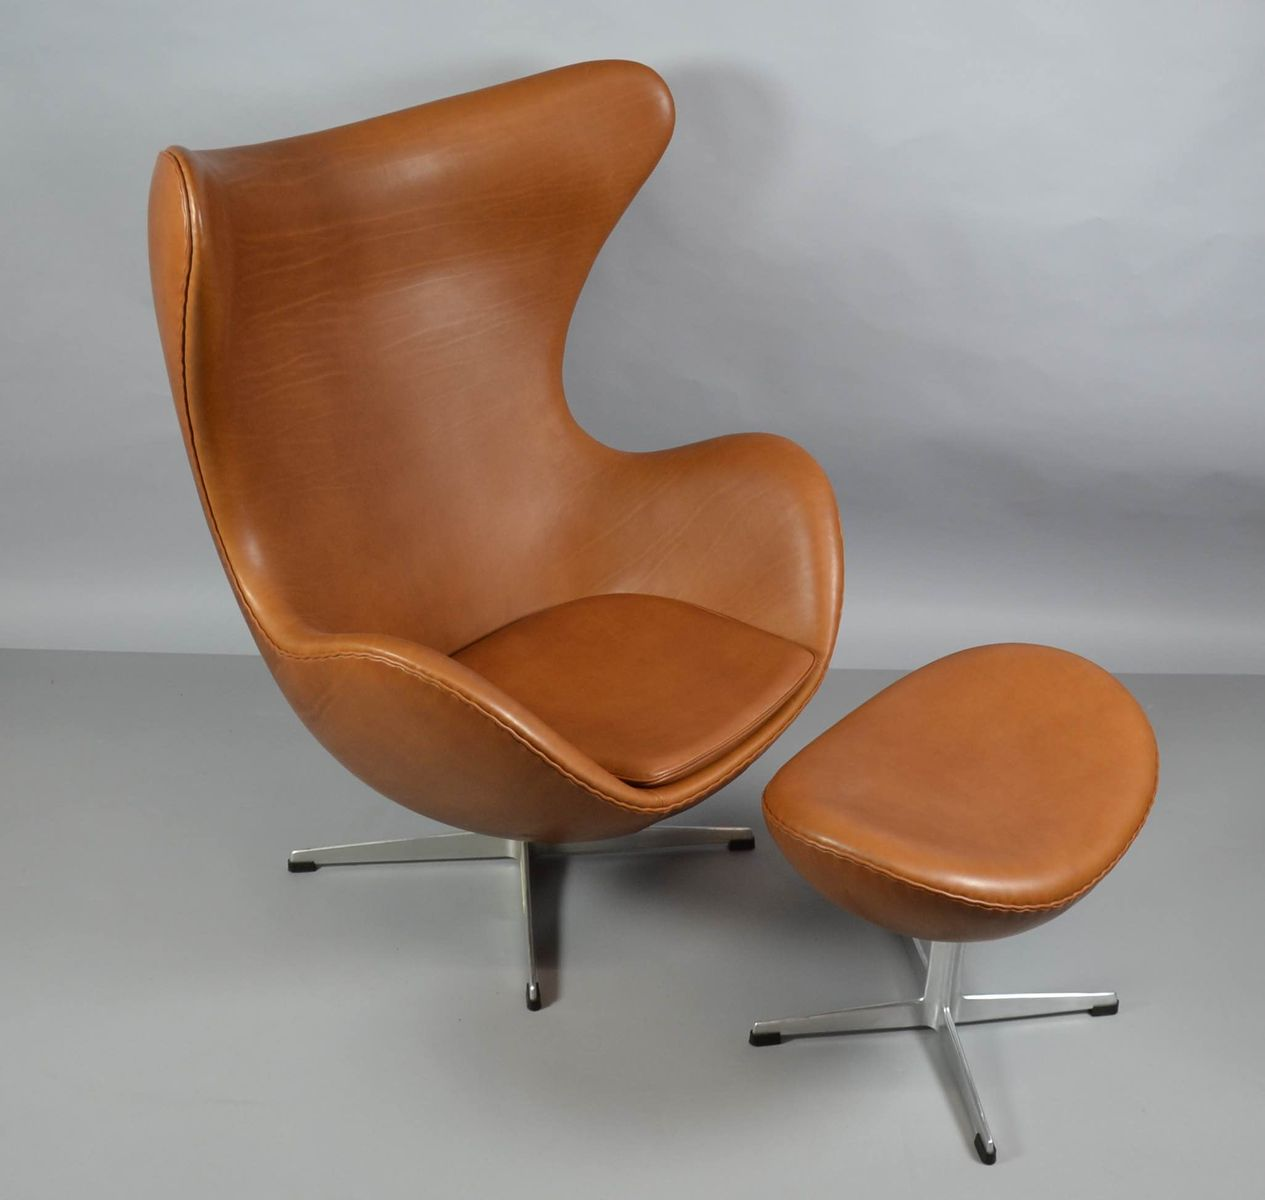 leather egg chair with ottoman by arne jacobsen for fritz hansen 1970s for sale at pamono. Black Bedroom Furniture Sets. Home Design Ideas